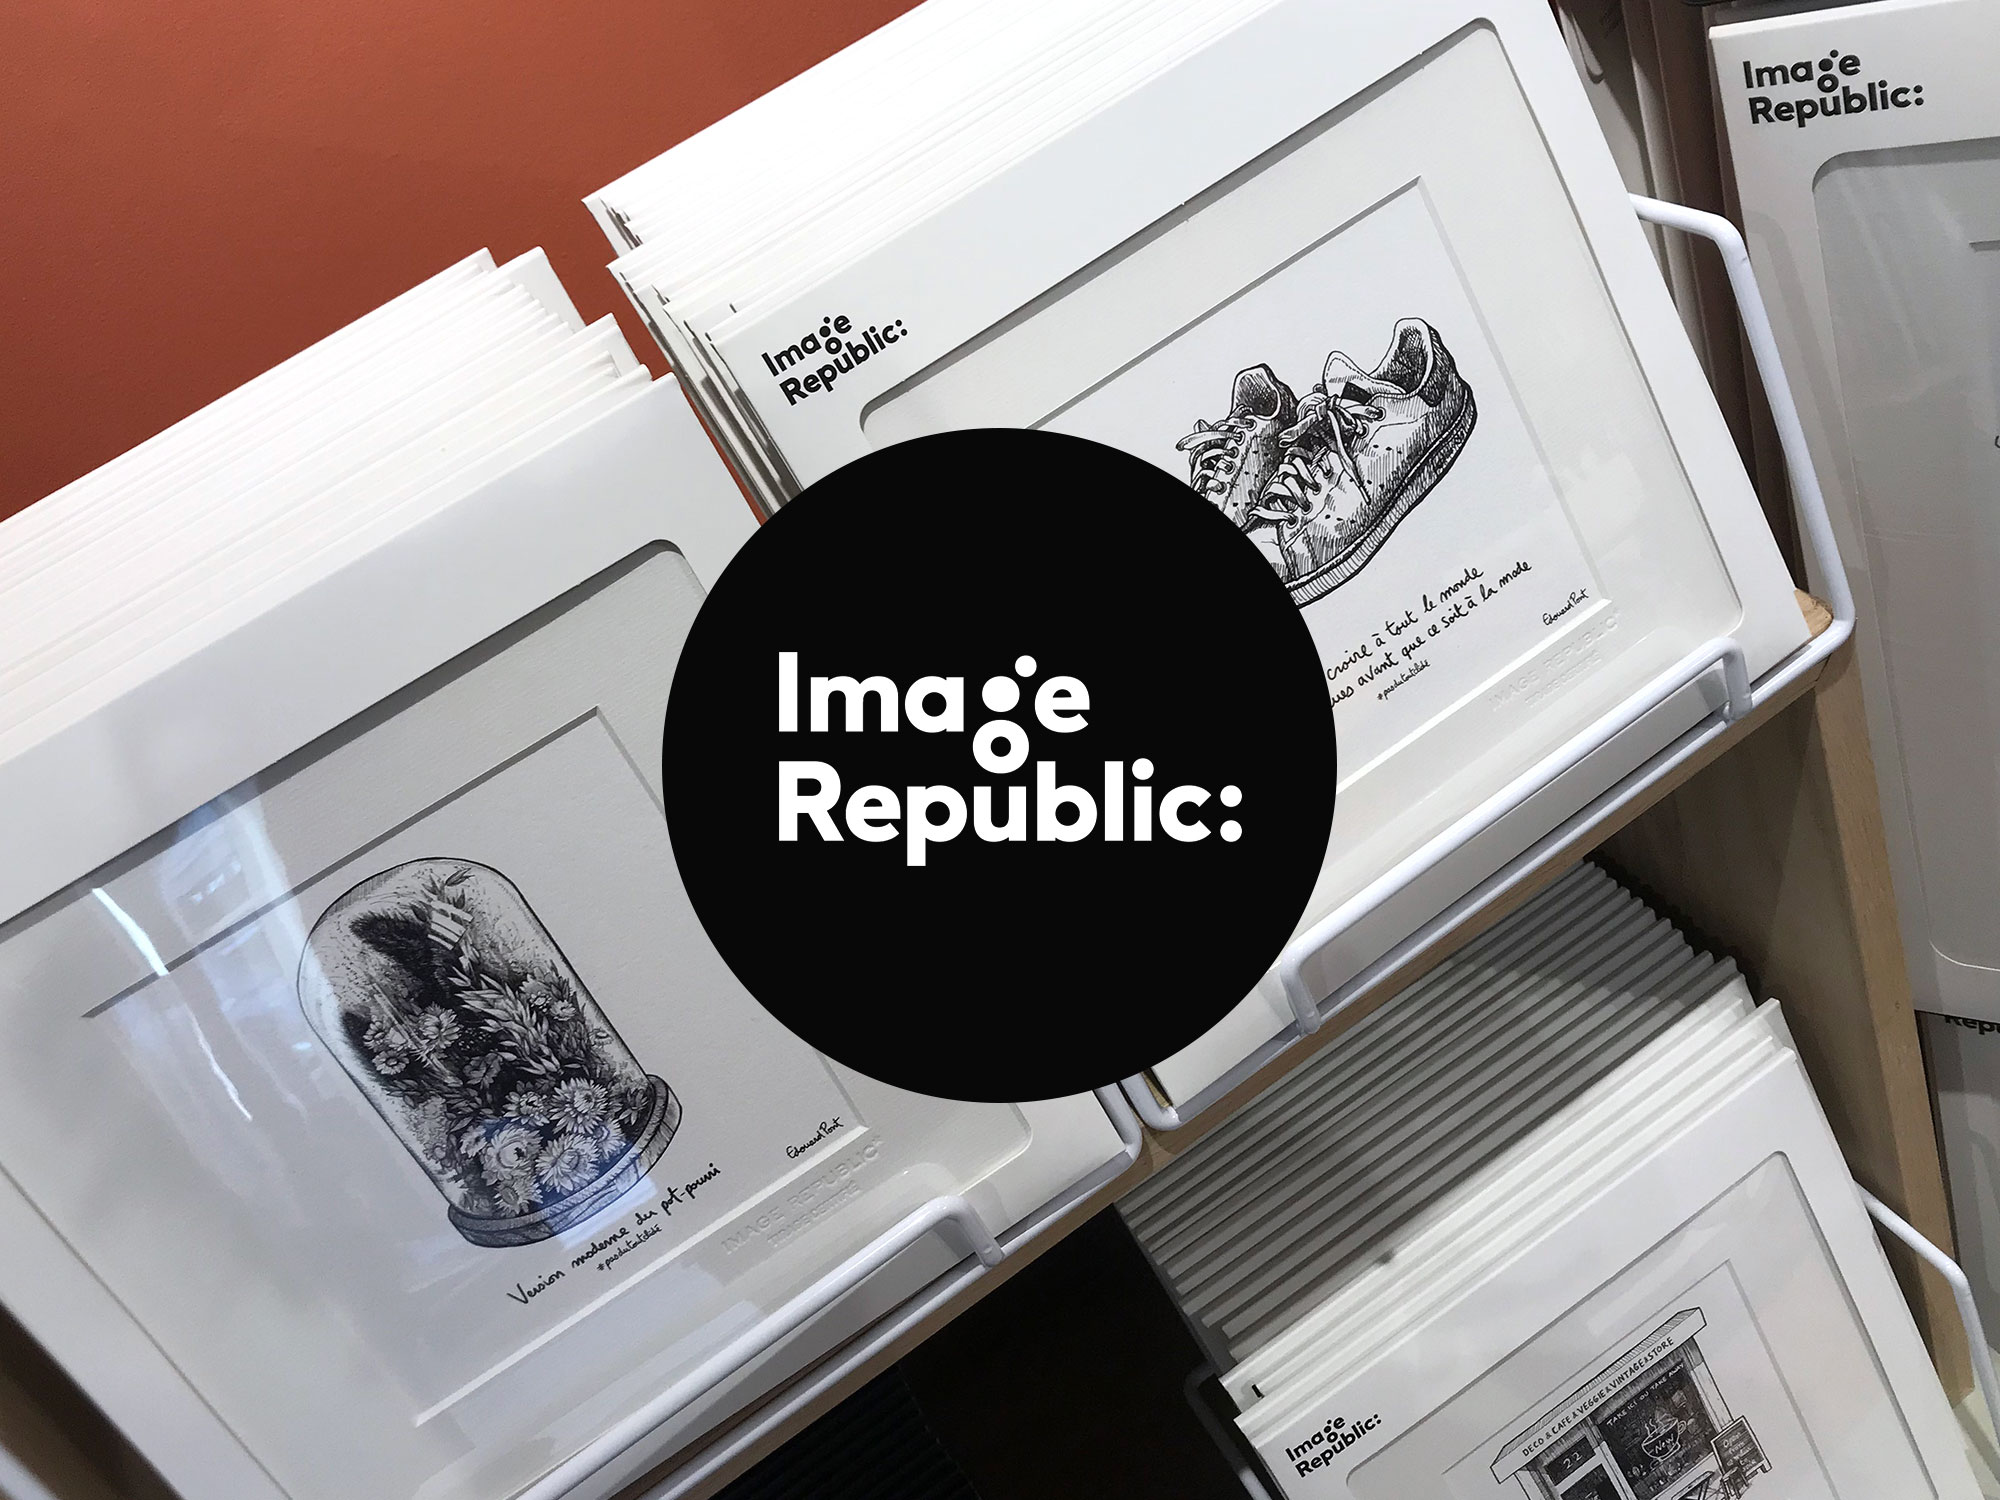 Shop Image Republic